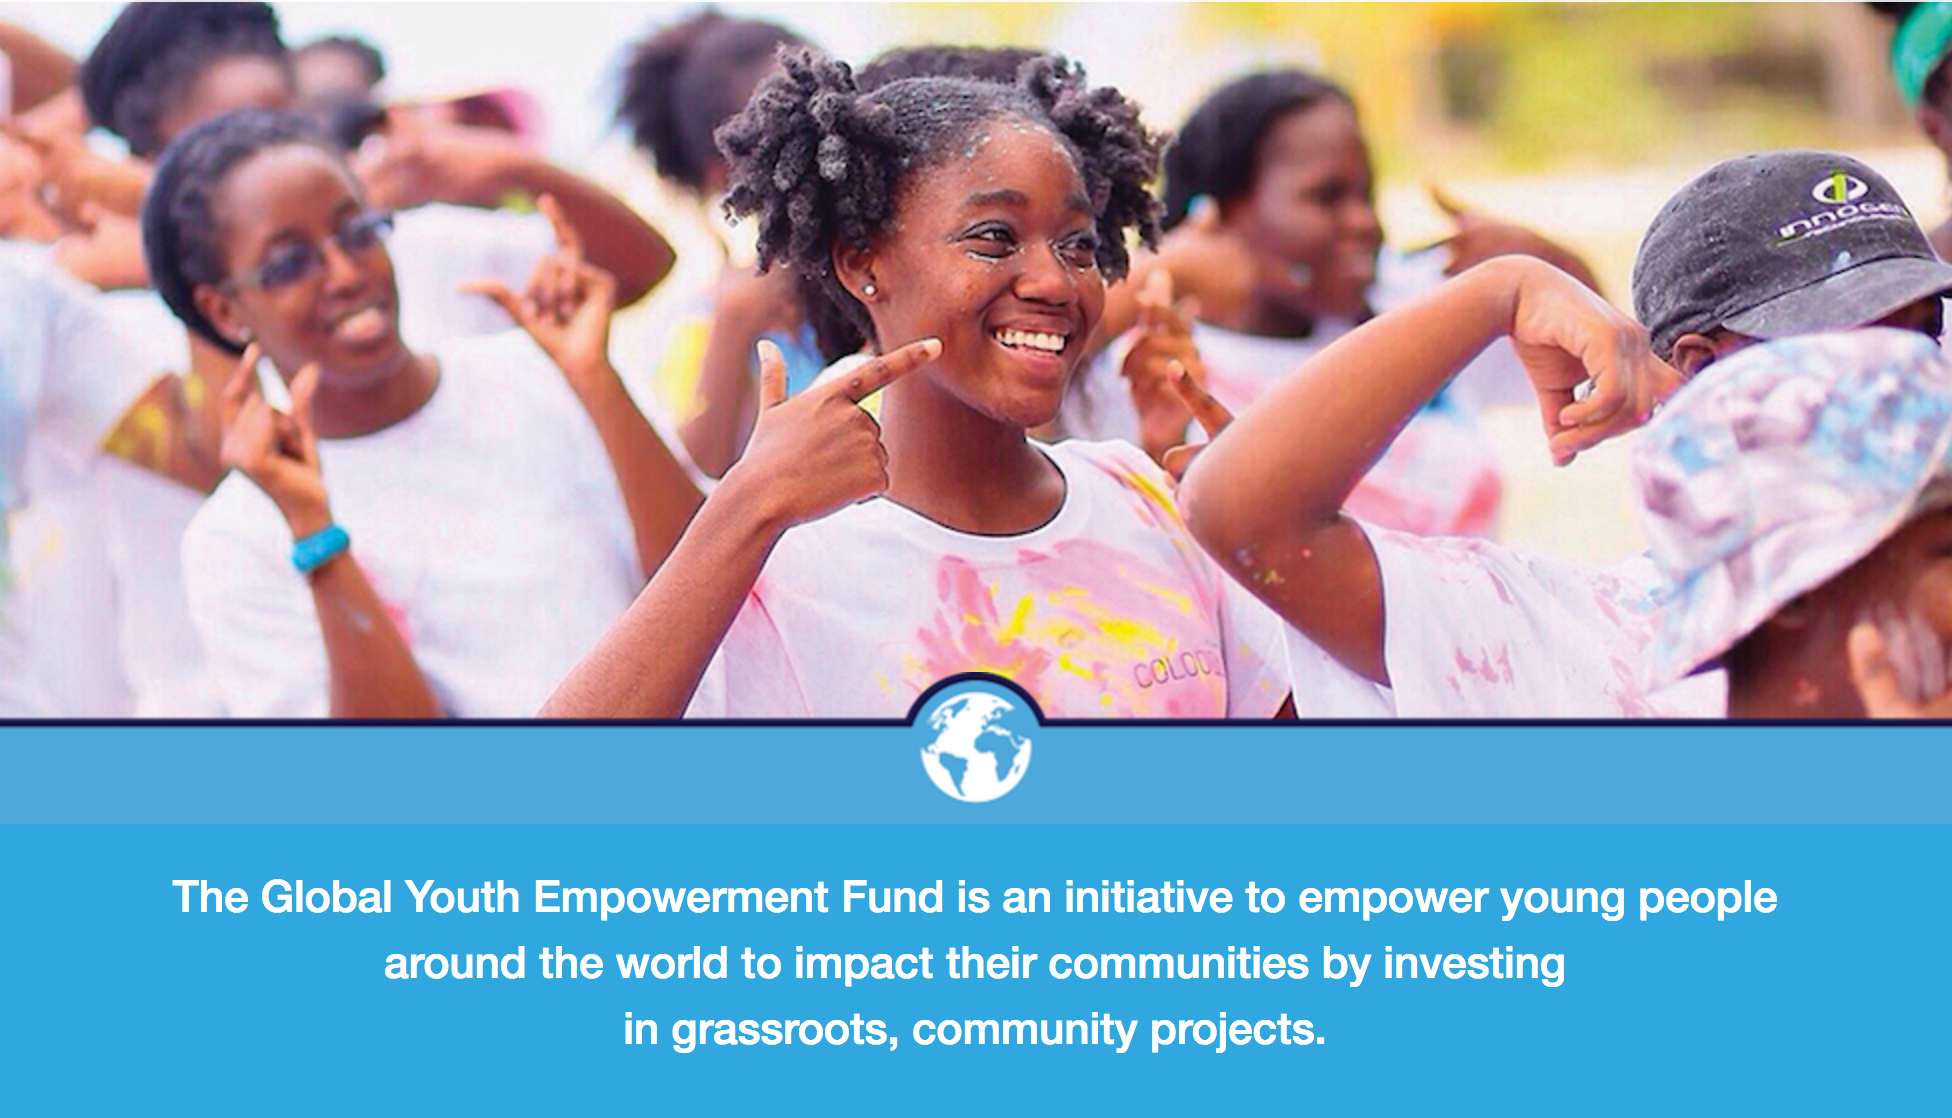 Global Youth Empowerment Fund 2017 (Up to $5,000 grant)